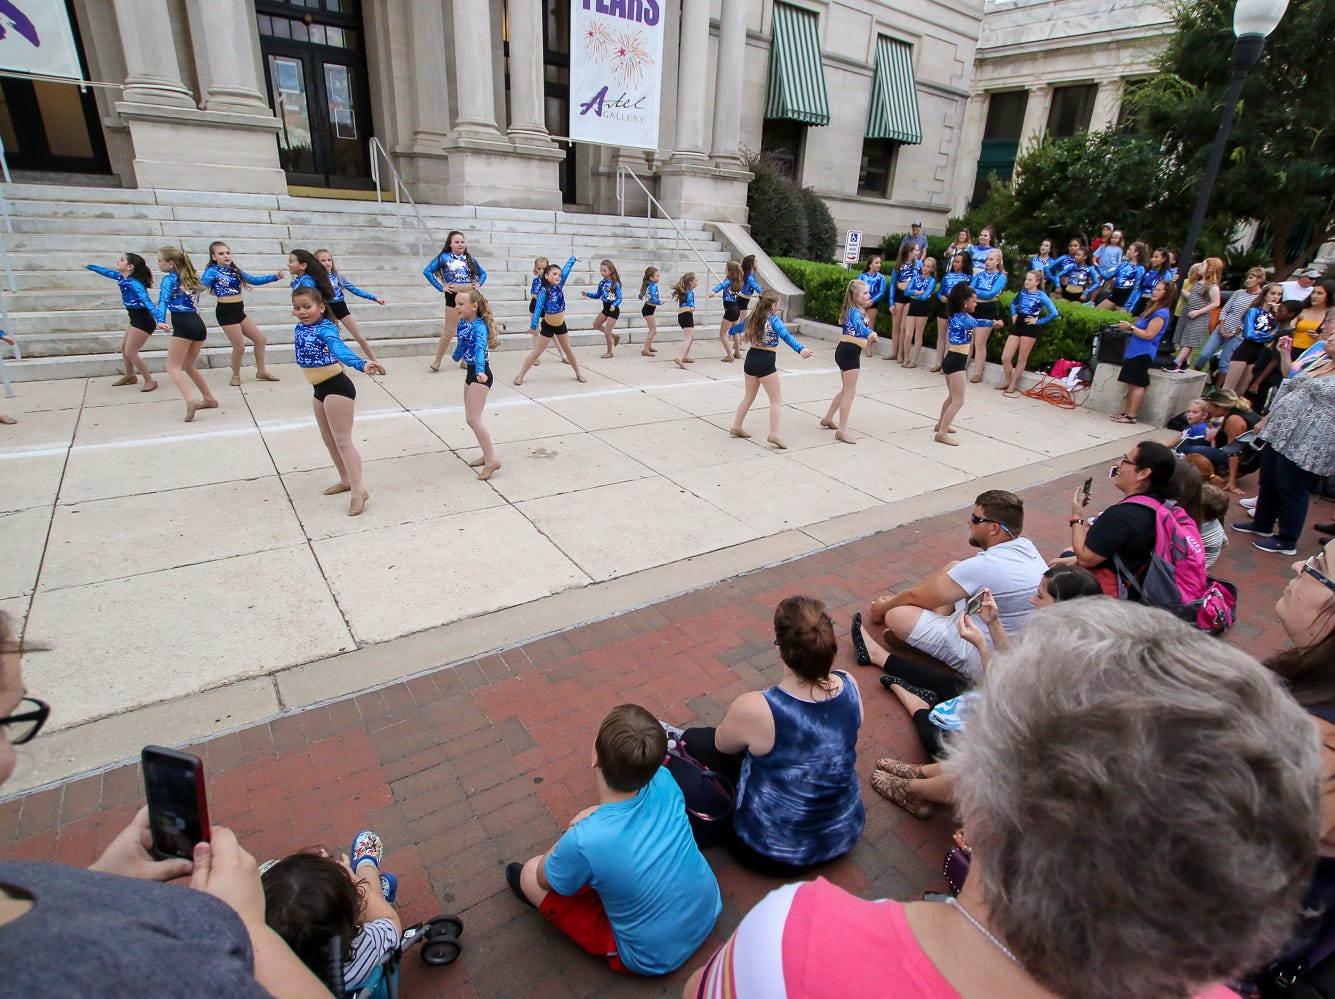 A group of dancers perform during Gallery Night on Friday, August 17, 2018.